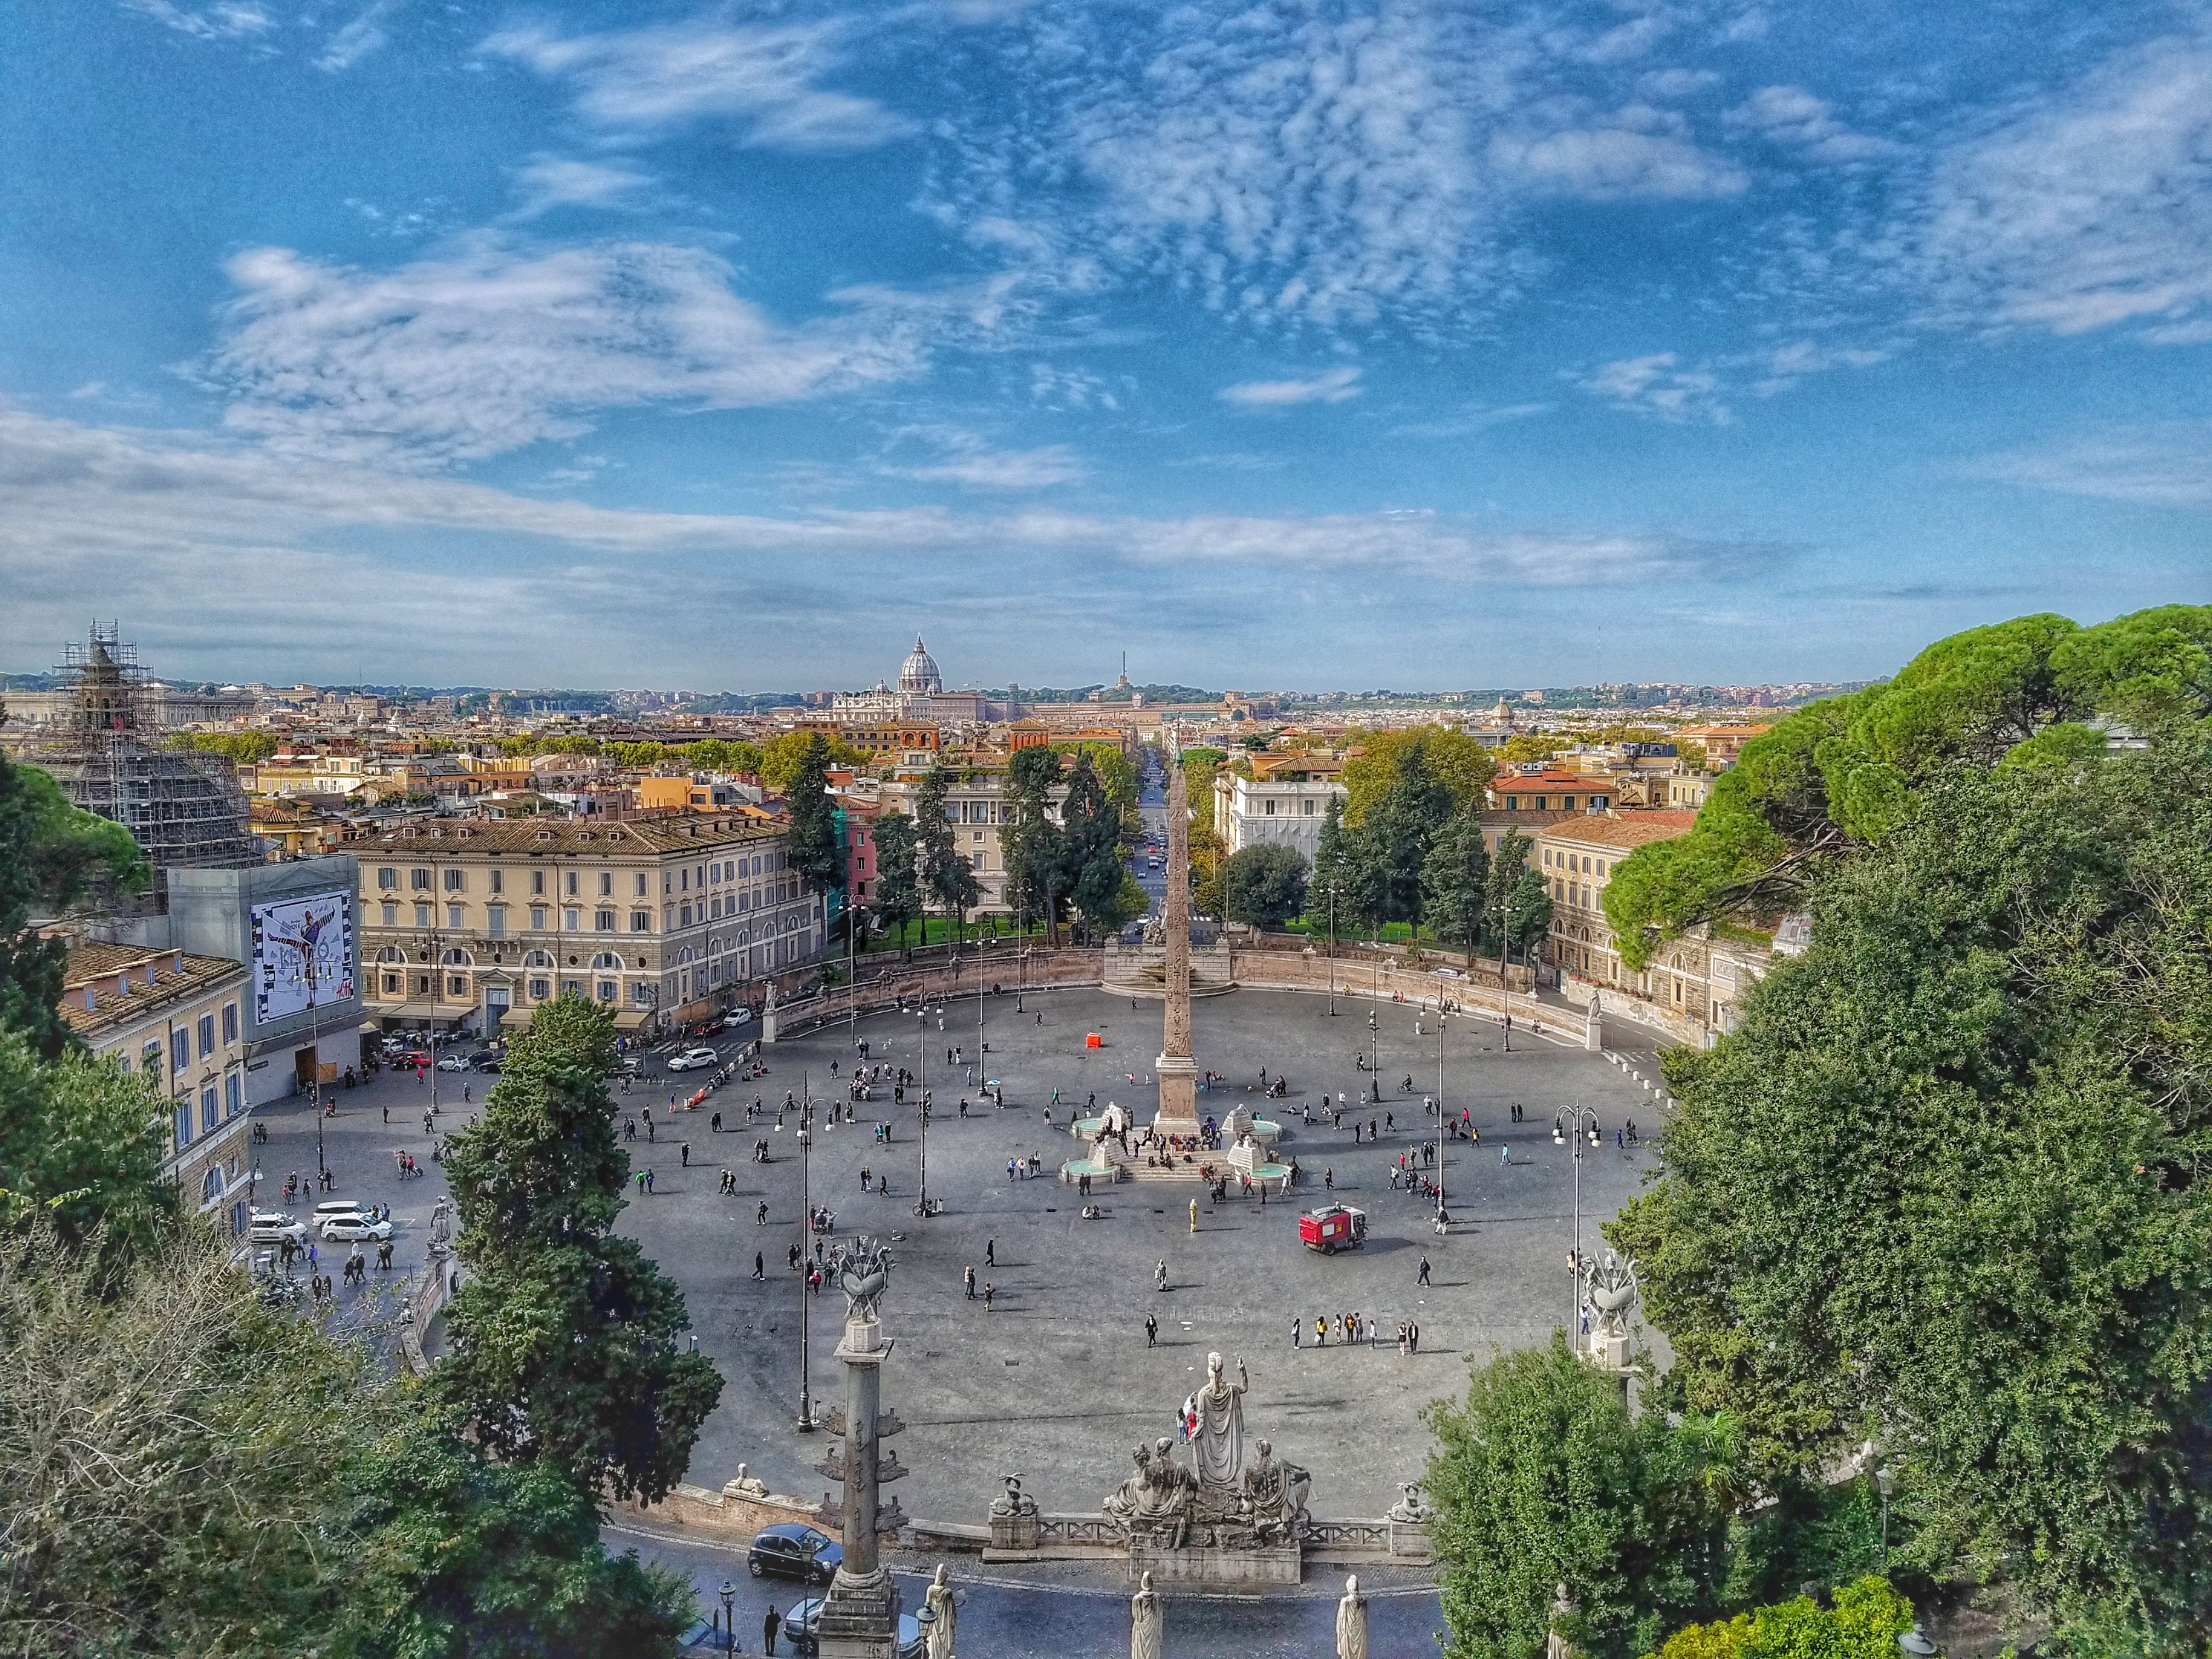 When in Rome: Top 10 Things to Do